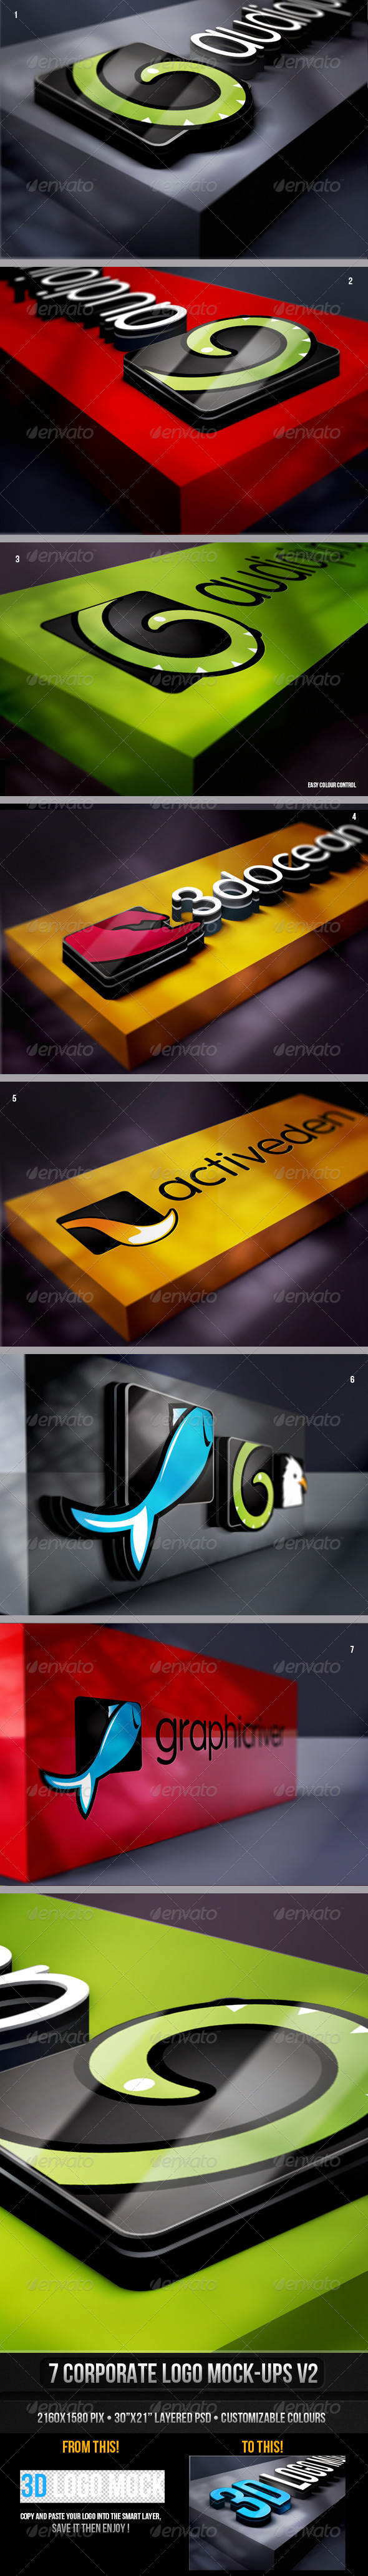 Corporate Logo Mock-up v2 - Logo Product Mock-Ups